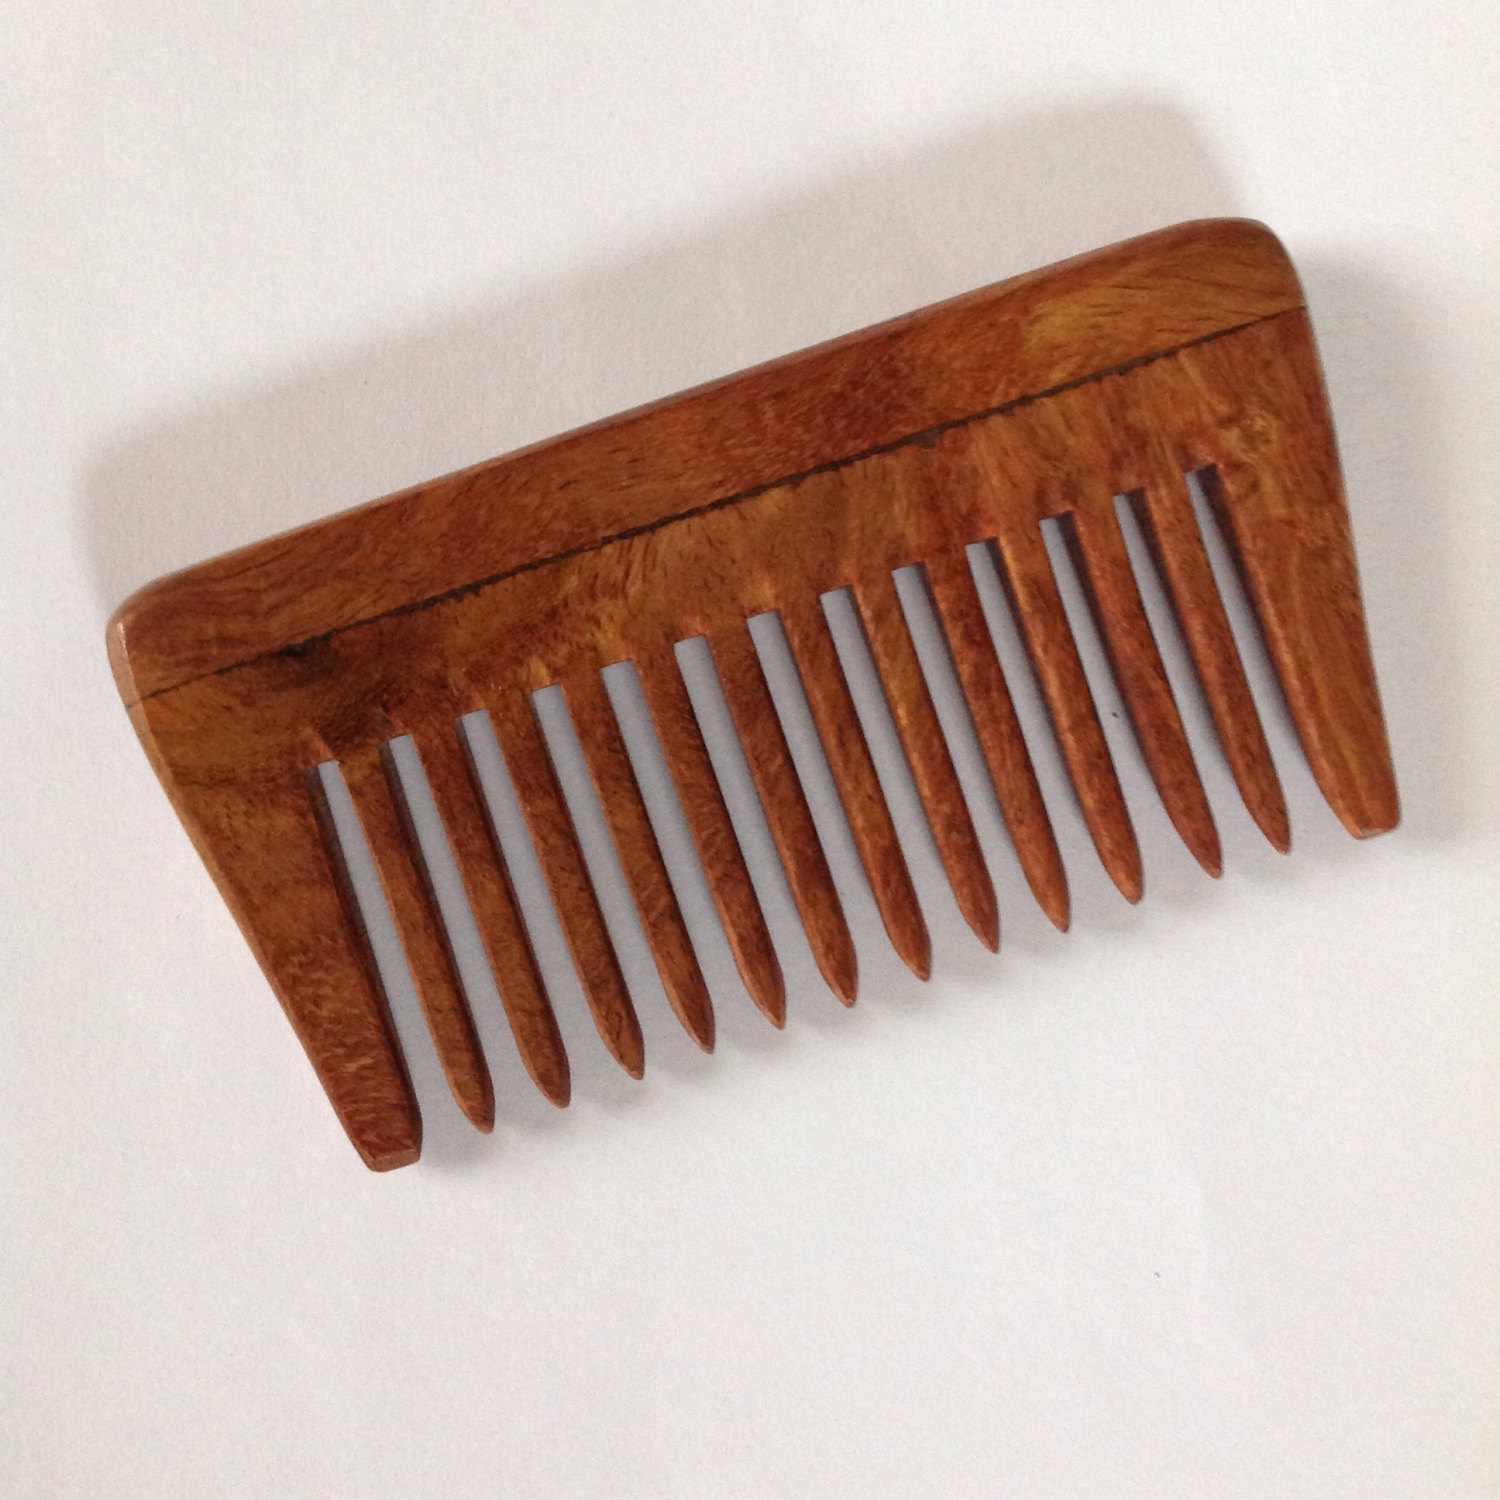 Organic Rosewood Wide Tooth Beard Comb  UB's Beard Basics Antistatic Massaging - $15.00